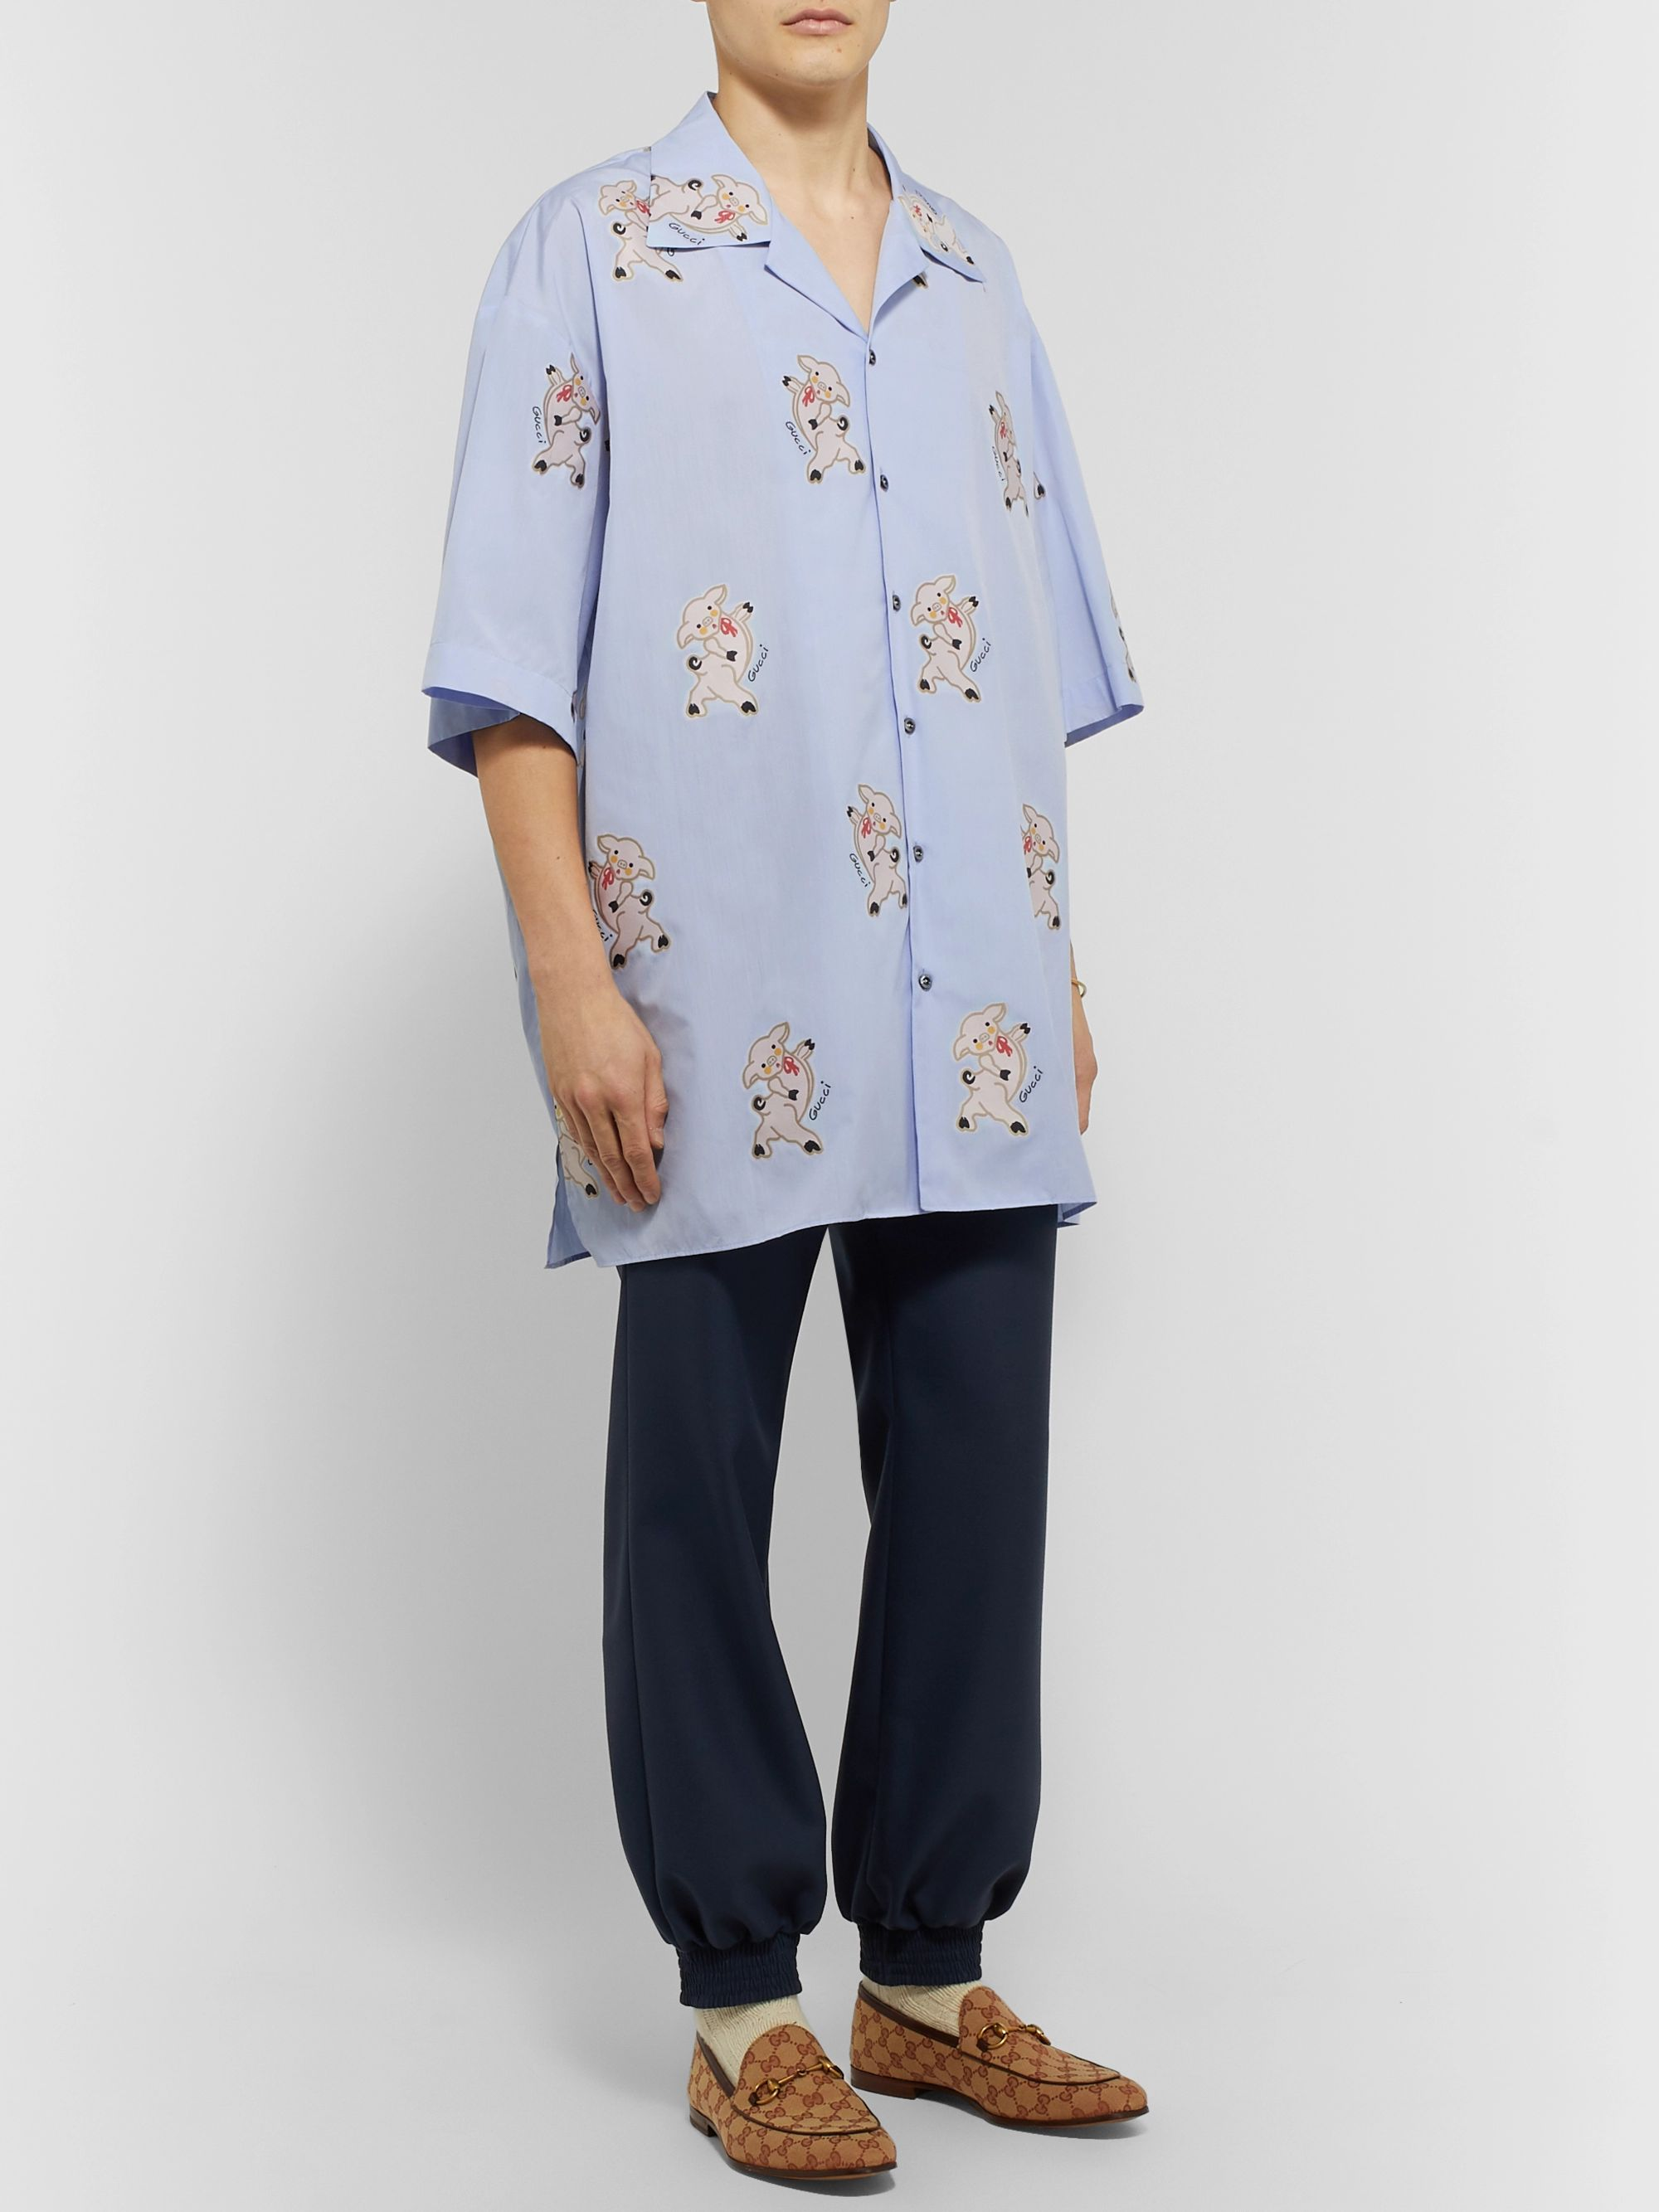 Gucci Oversized Camp-Collar Embroidered Cotton Shirt